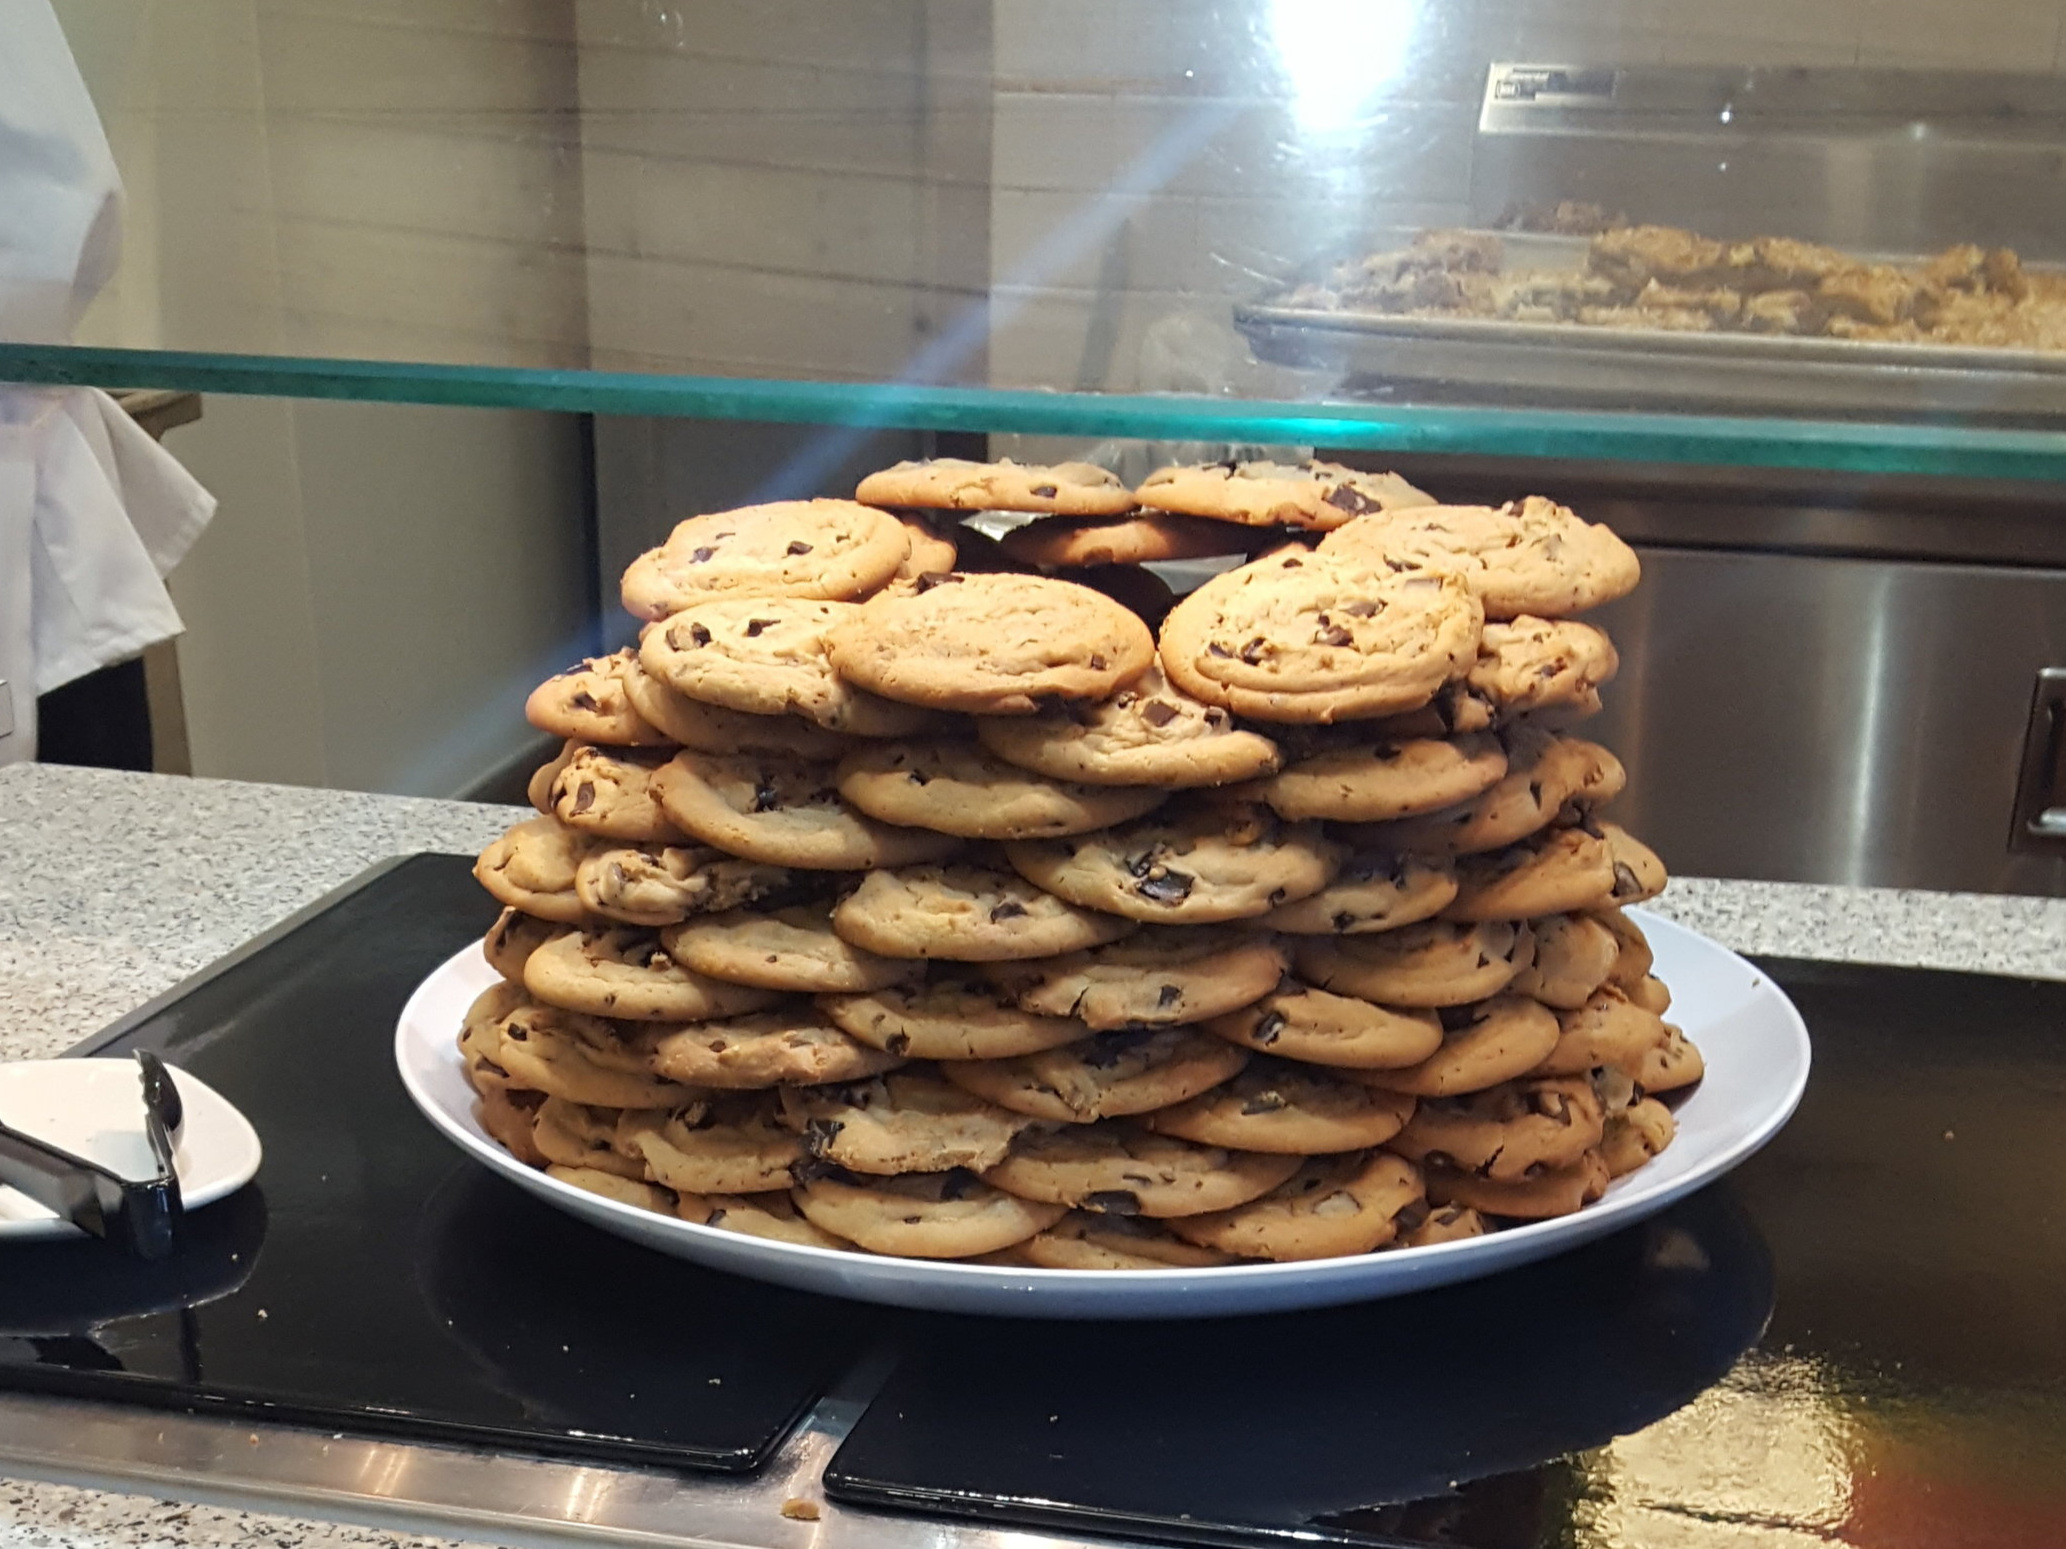 Heaps of cookies and other foods that are easily accessible create a culture of abundance.